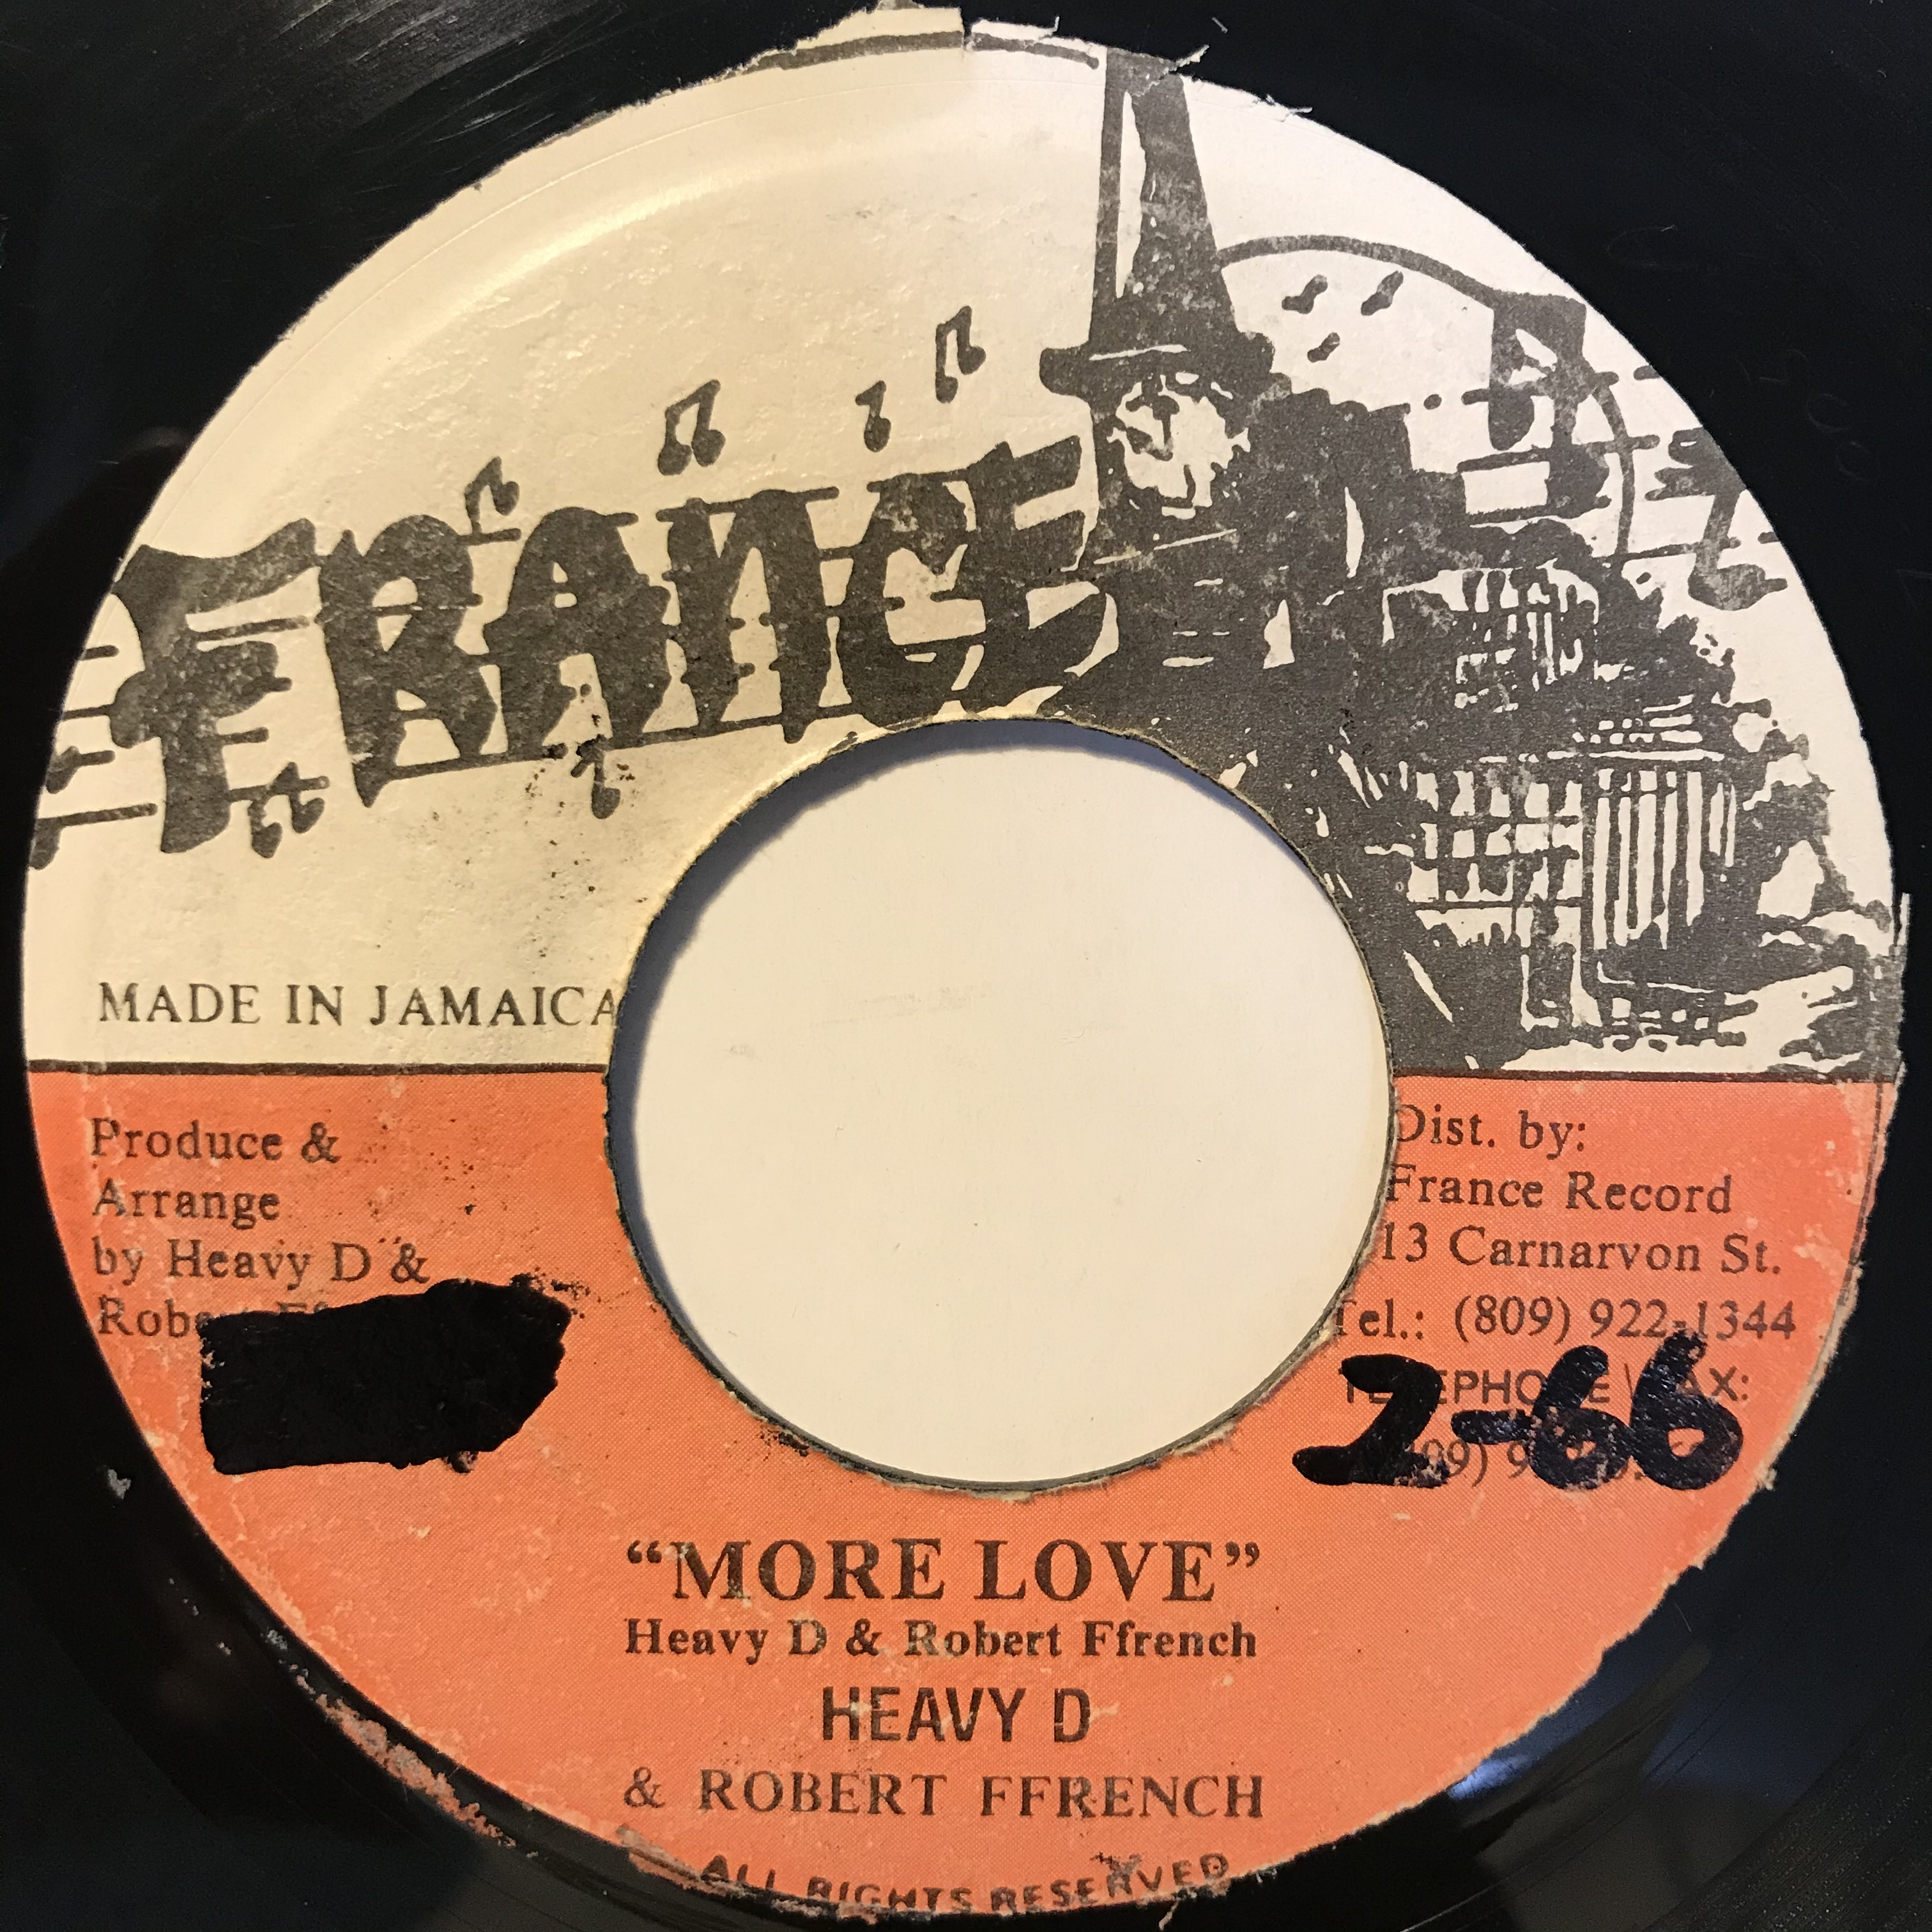 Heavy D & Robert French - More Love【7-10887】